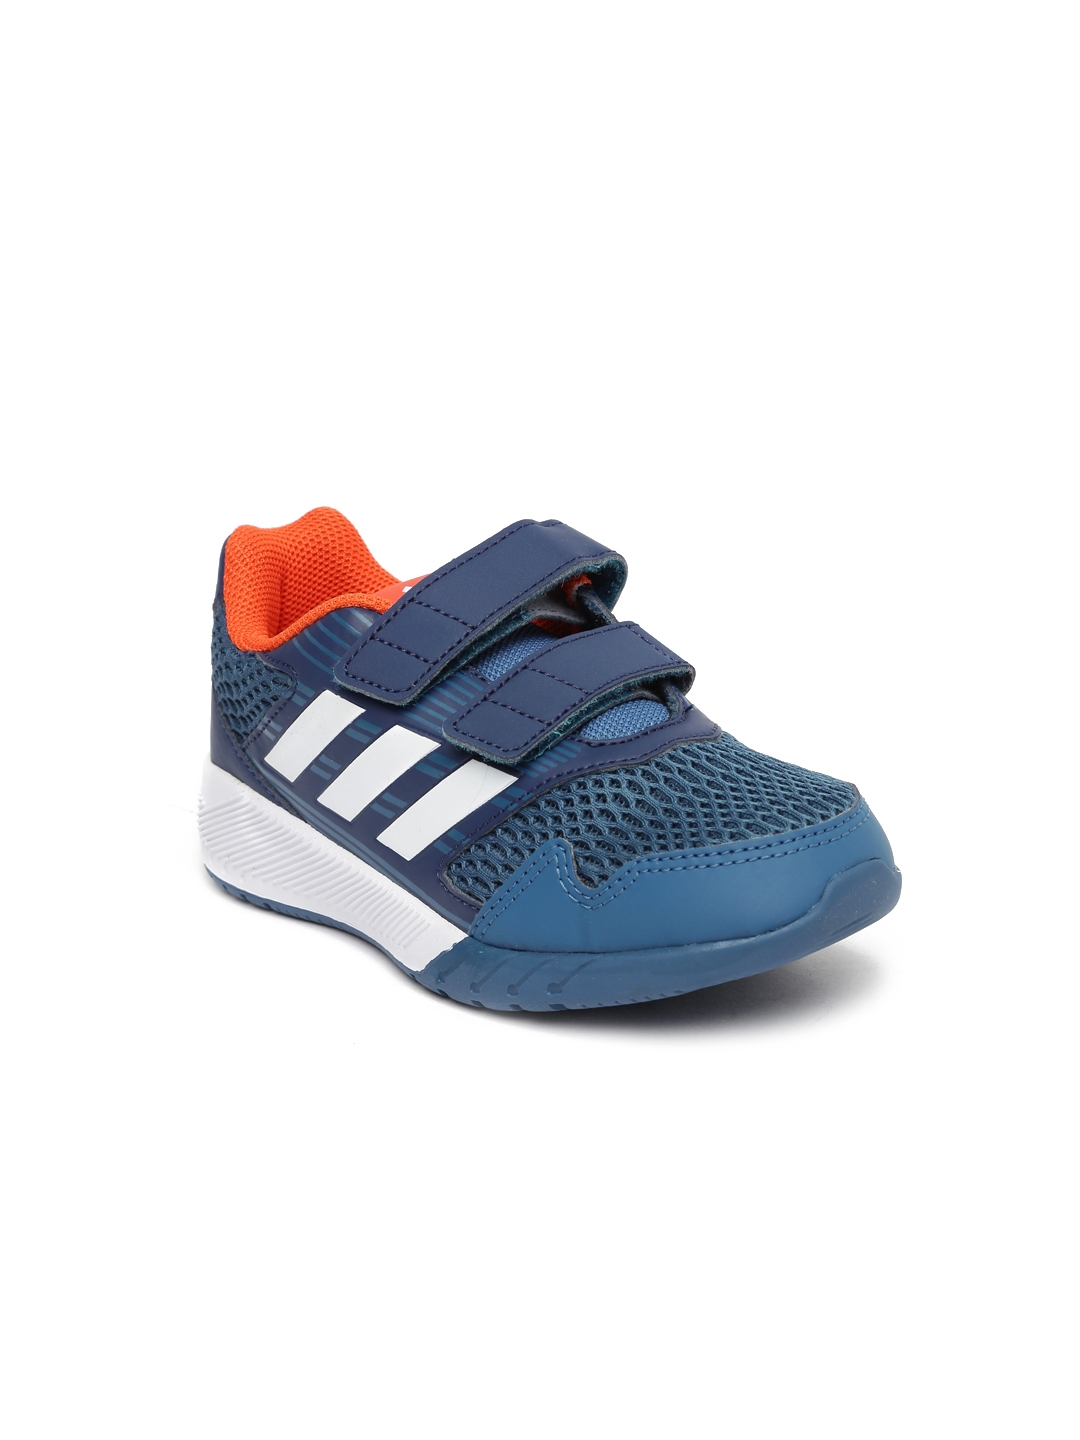 best sneakers 03382 58ad0 ADIDAS Kids Navy Altarun CF Running Shoes